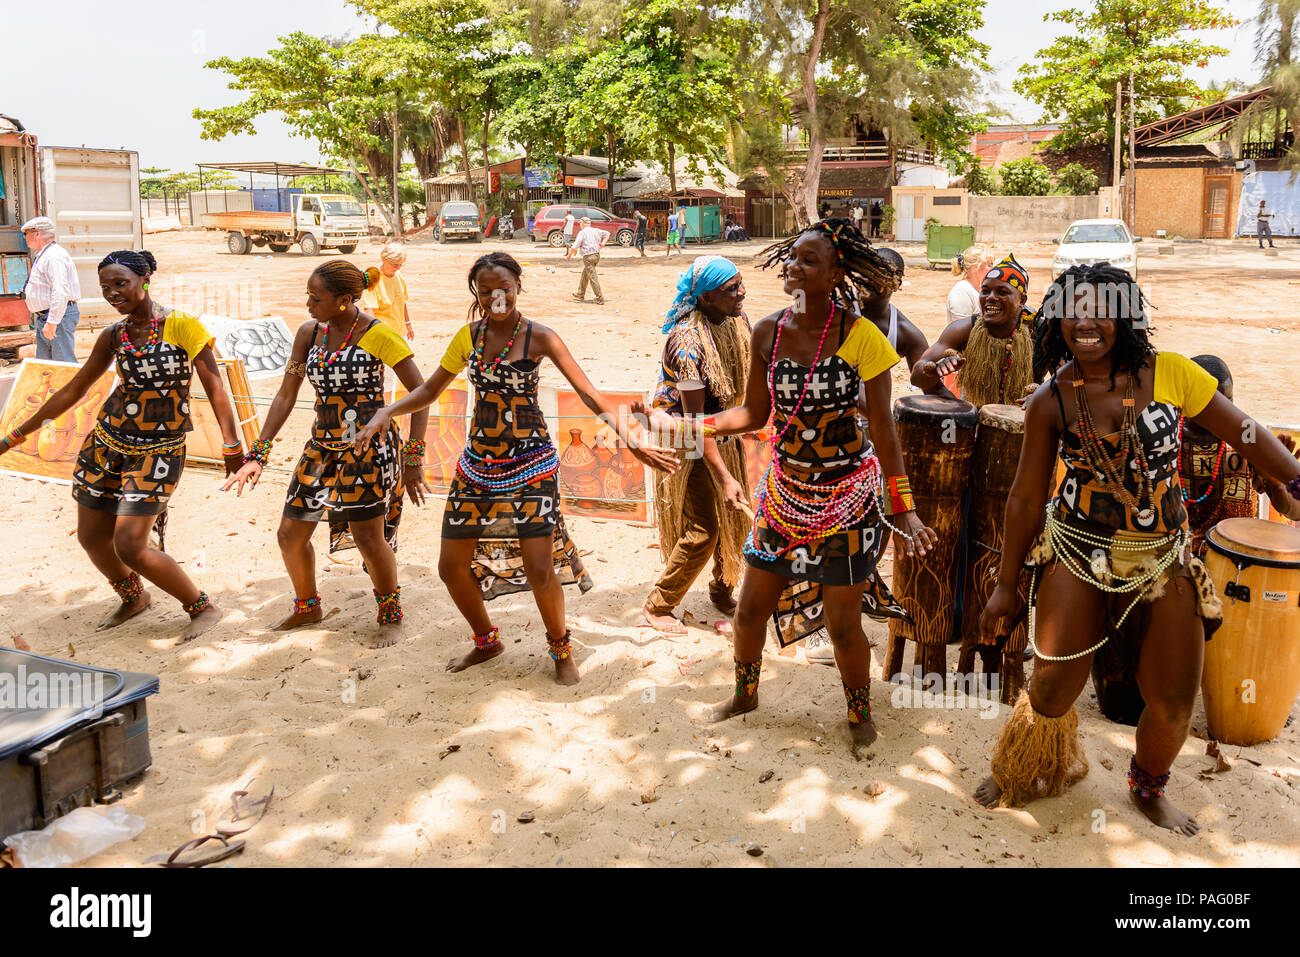 ANGOLA, LUANDA - MARCH 4, 2013:  Unidentified Angolan women make the street performance of the national falk dance for the tourists in Angola, Mar 4,  Stock Photo